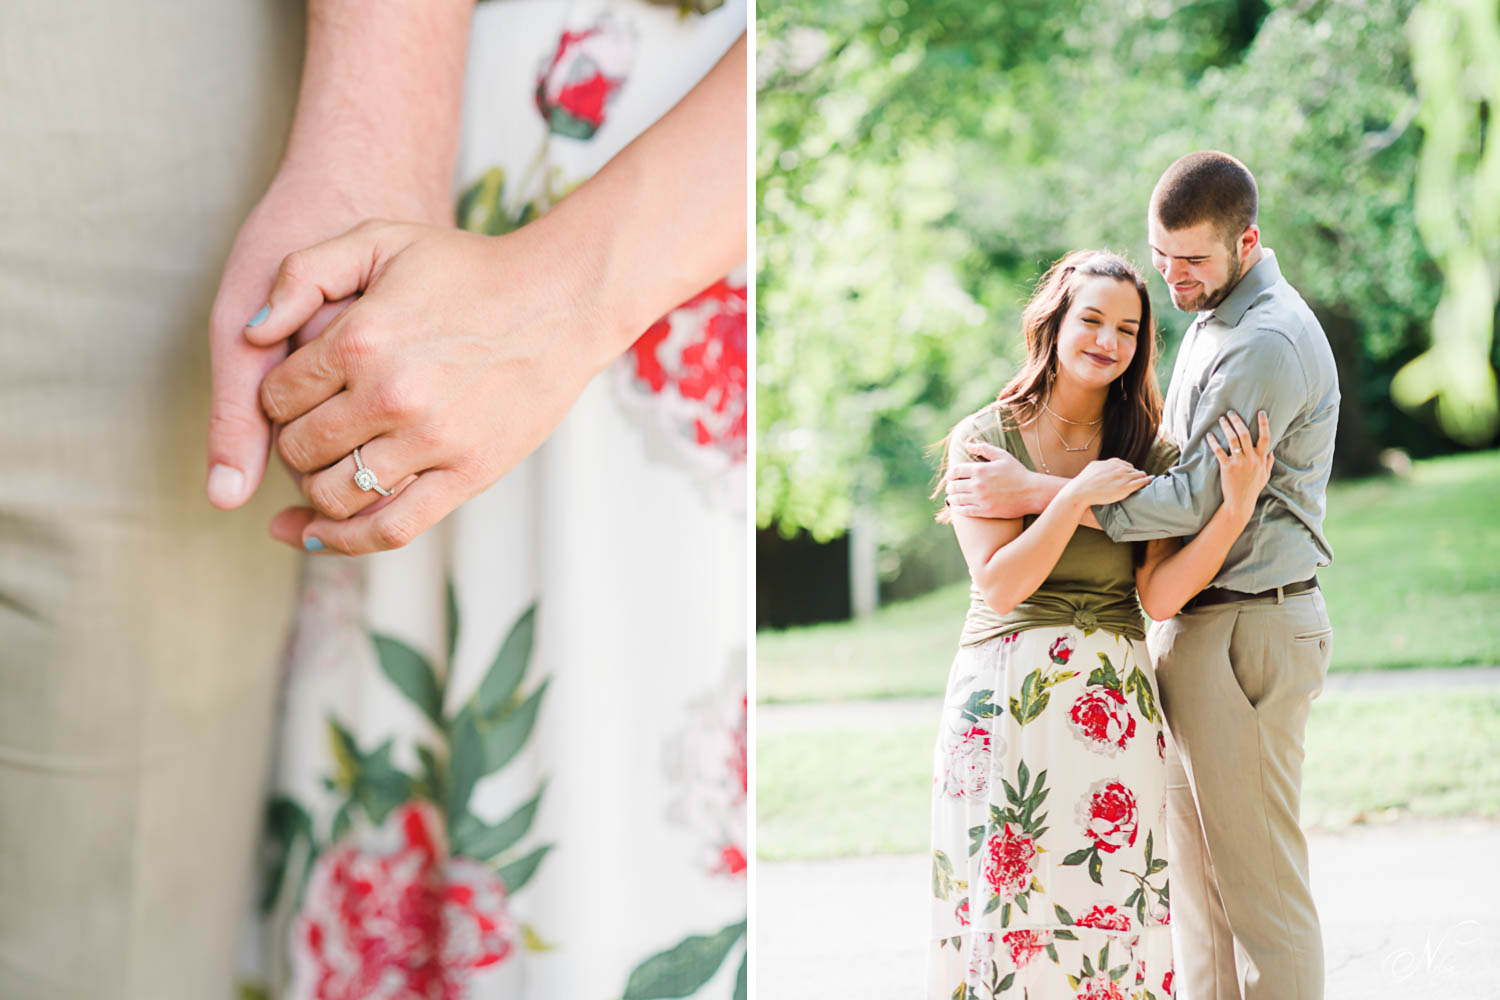 two hands with an engagement ring and floral print skirt in the background. Anda smiling couple outside for their summer engagement photos.